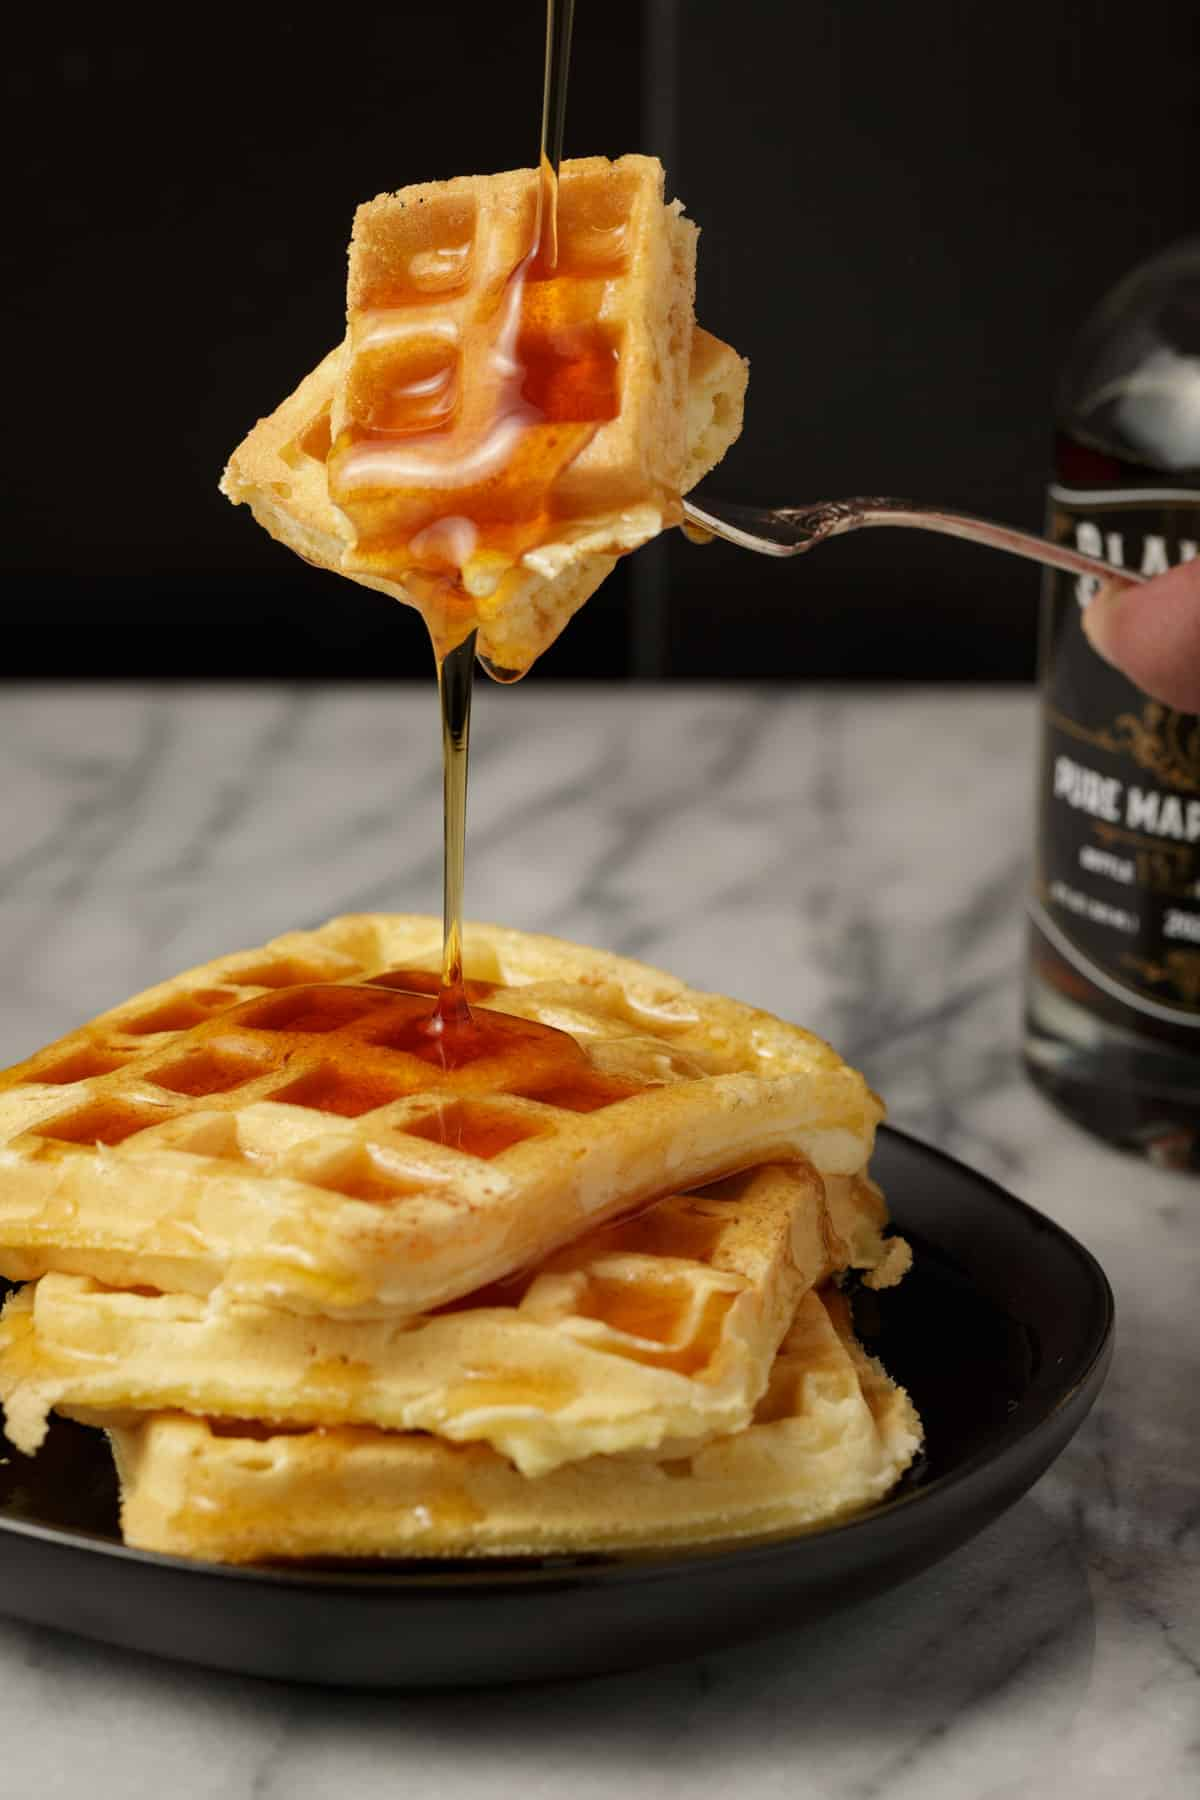 A bite of a homemade waffle with syrup dripping off of it.